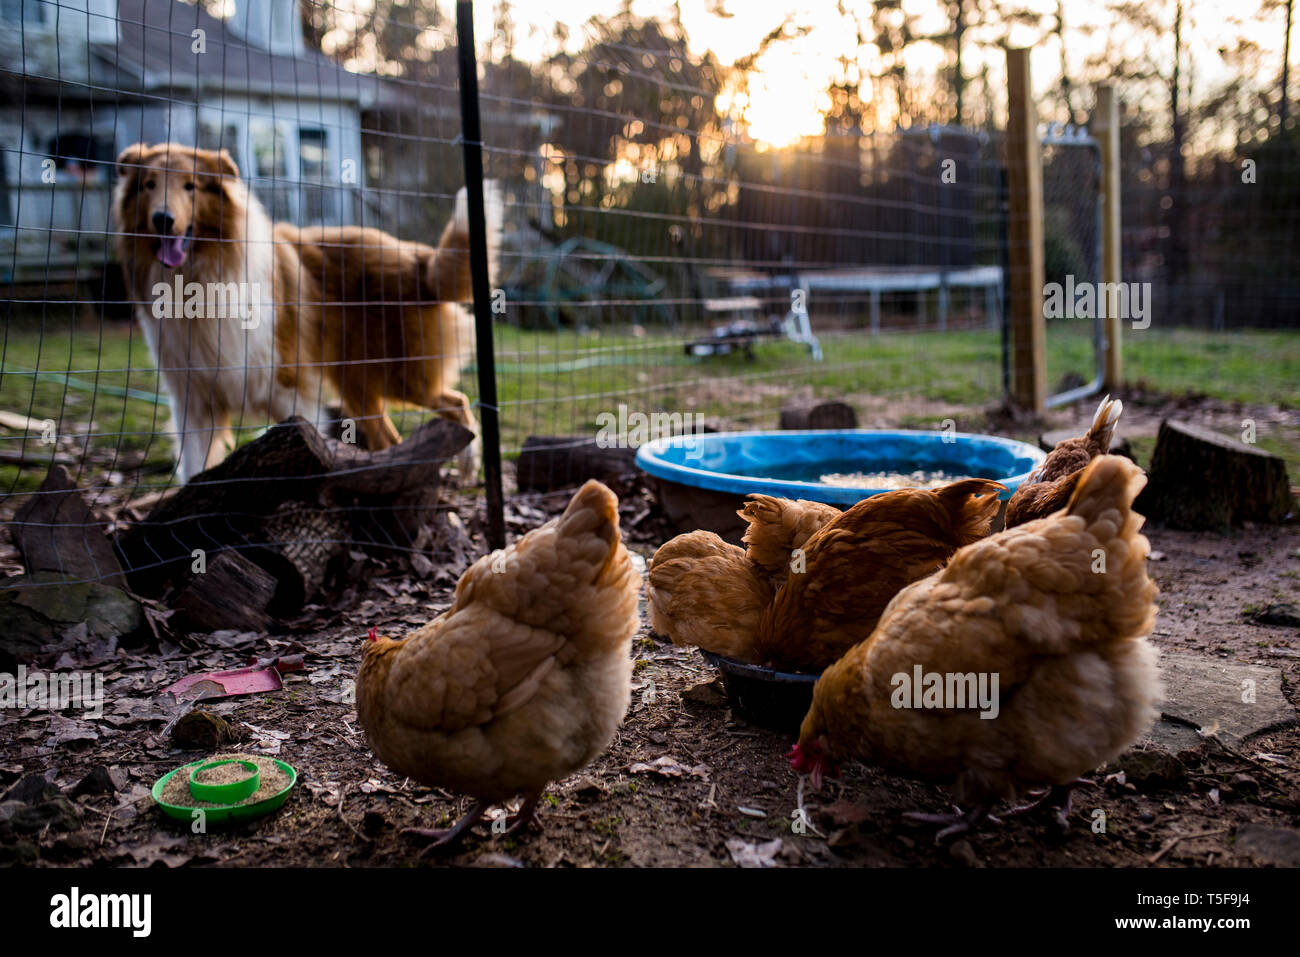 Chickens eat while collie dog remains close to watch - Stock Image